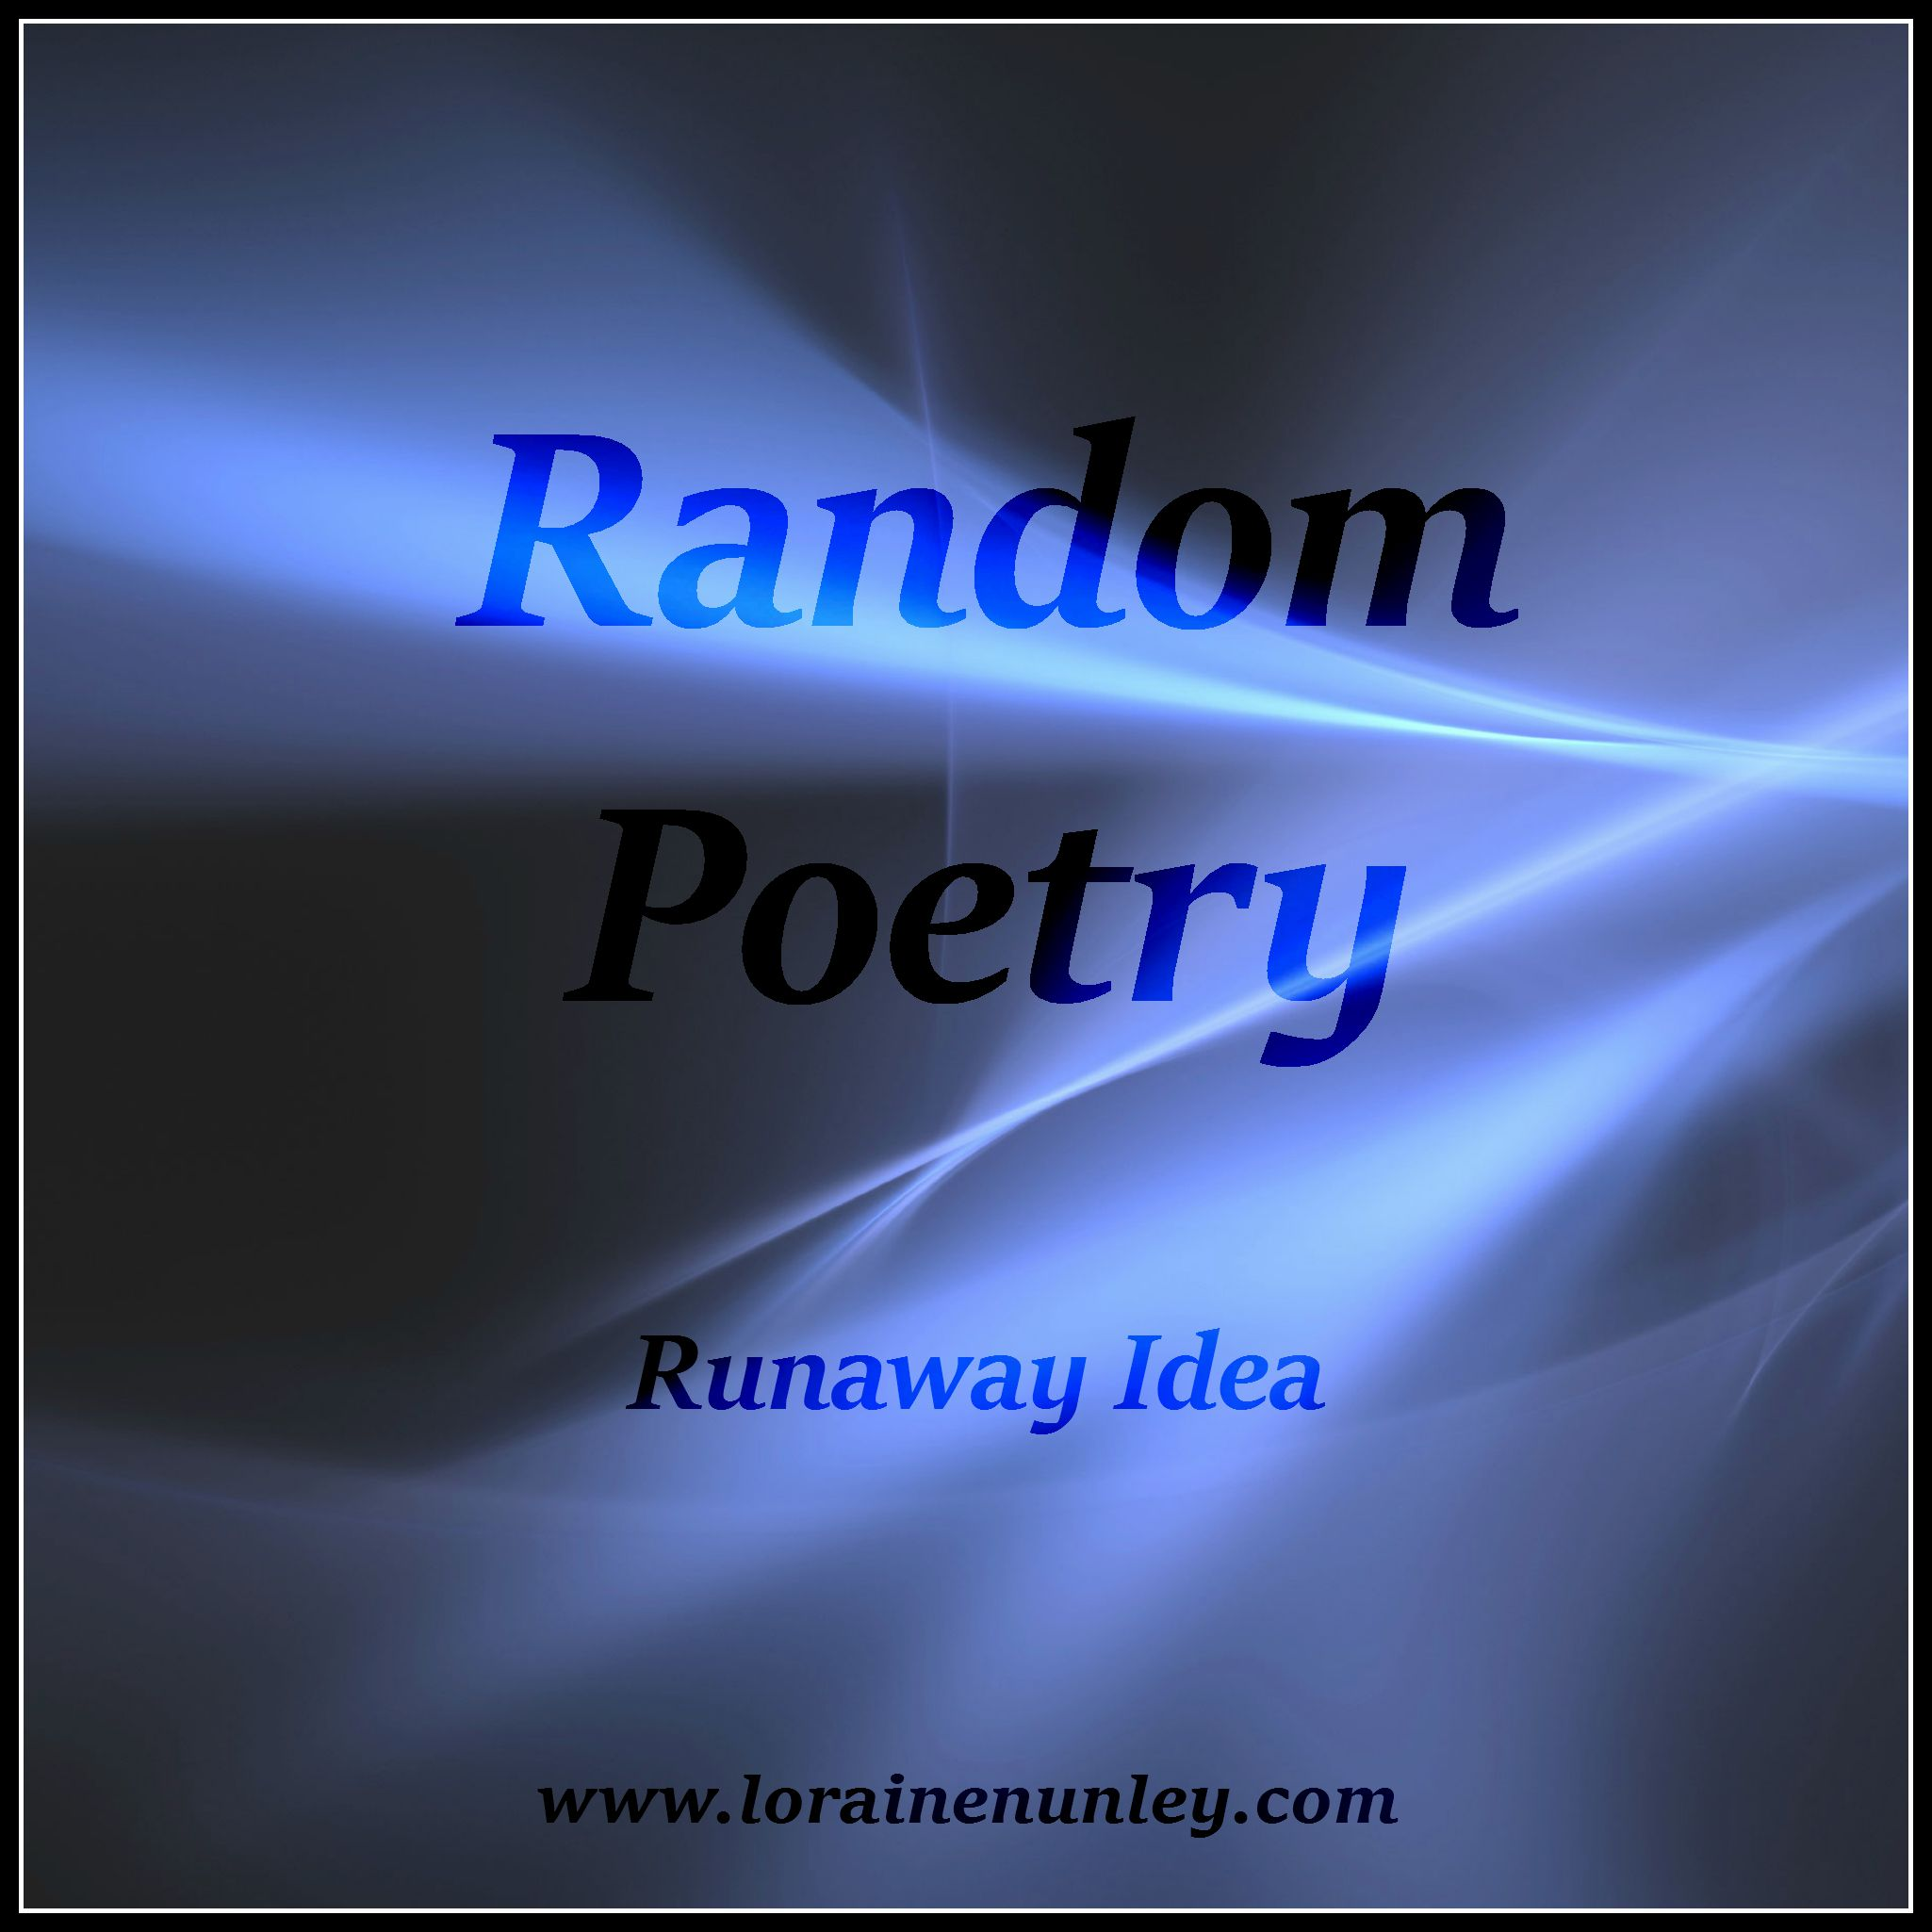 Runaway Idea (Random Poetry)